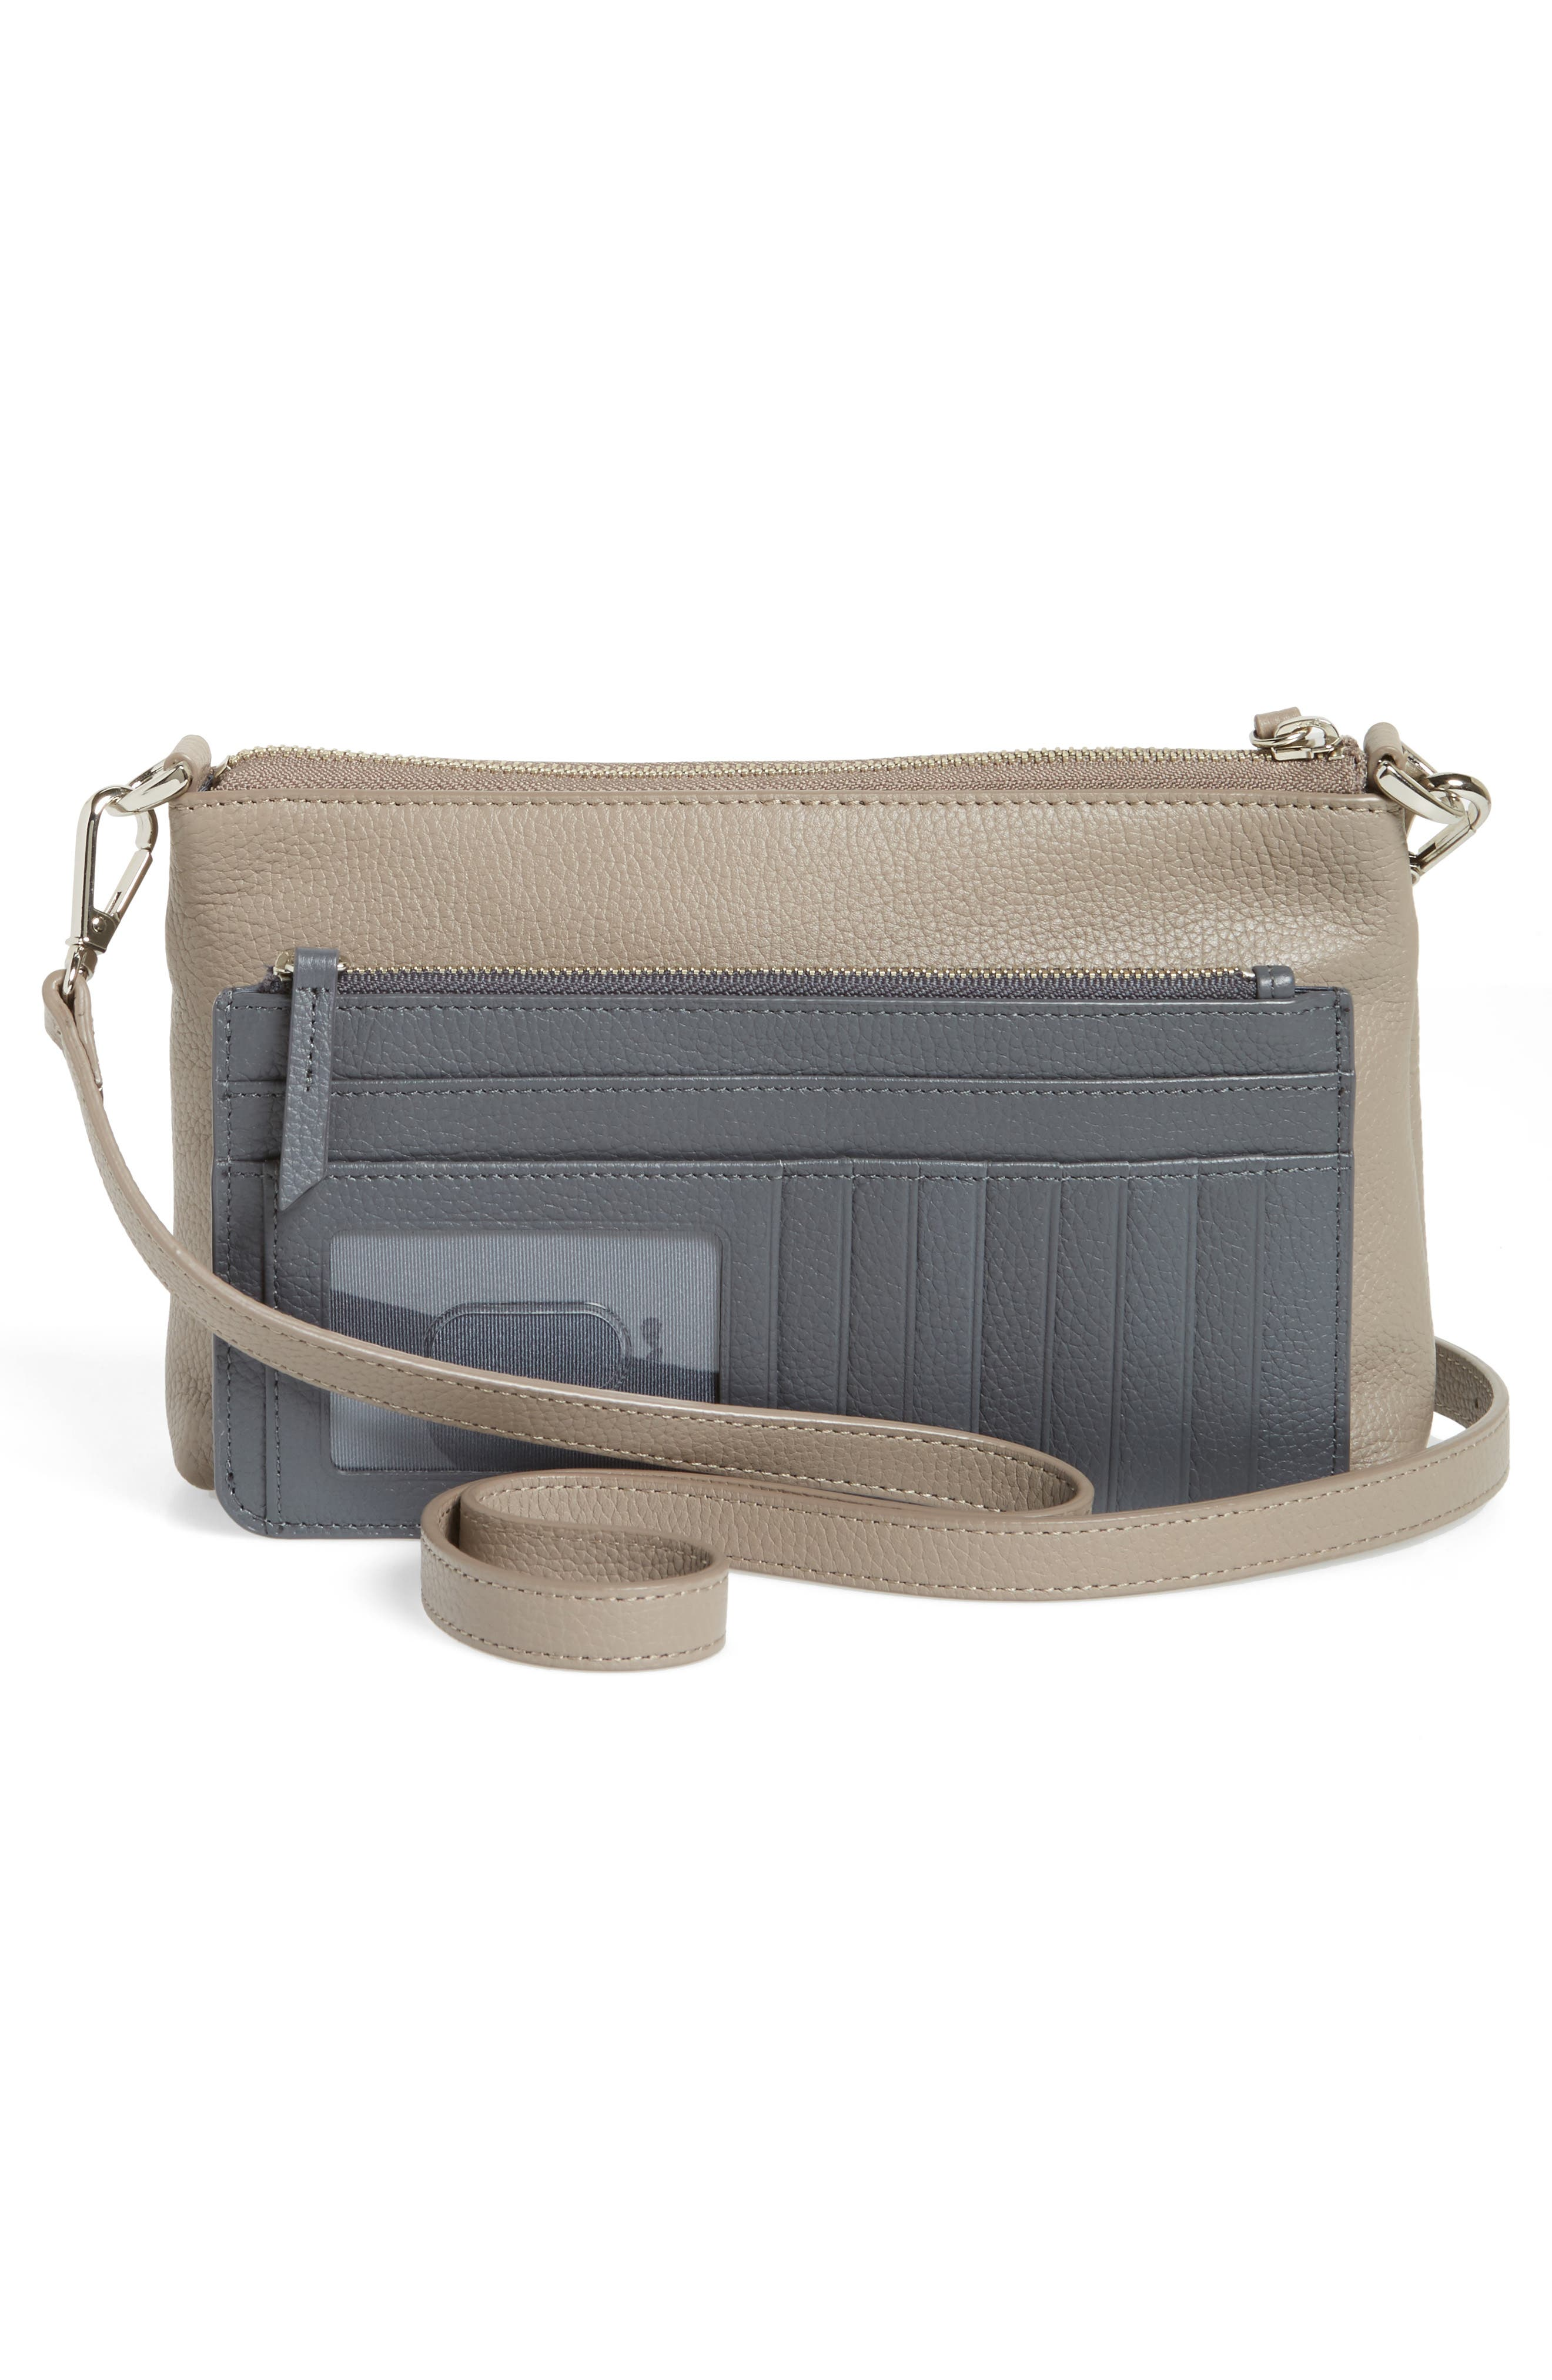 Brixton Convertible Leather Crossbody Bag with Pop-Out Card Holder,                             Alternate thumbnail 8, color,                             GREY TAUPE